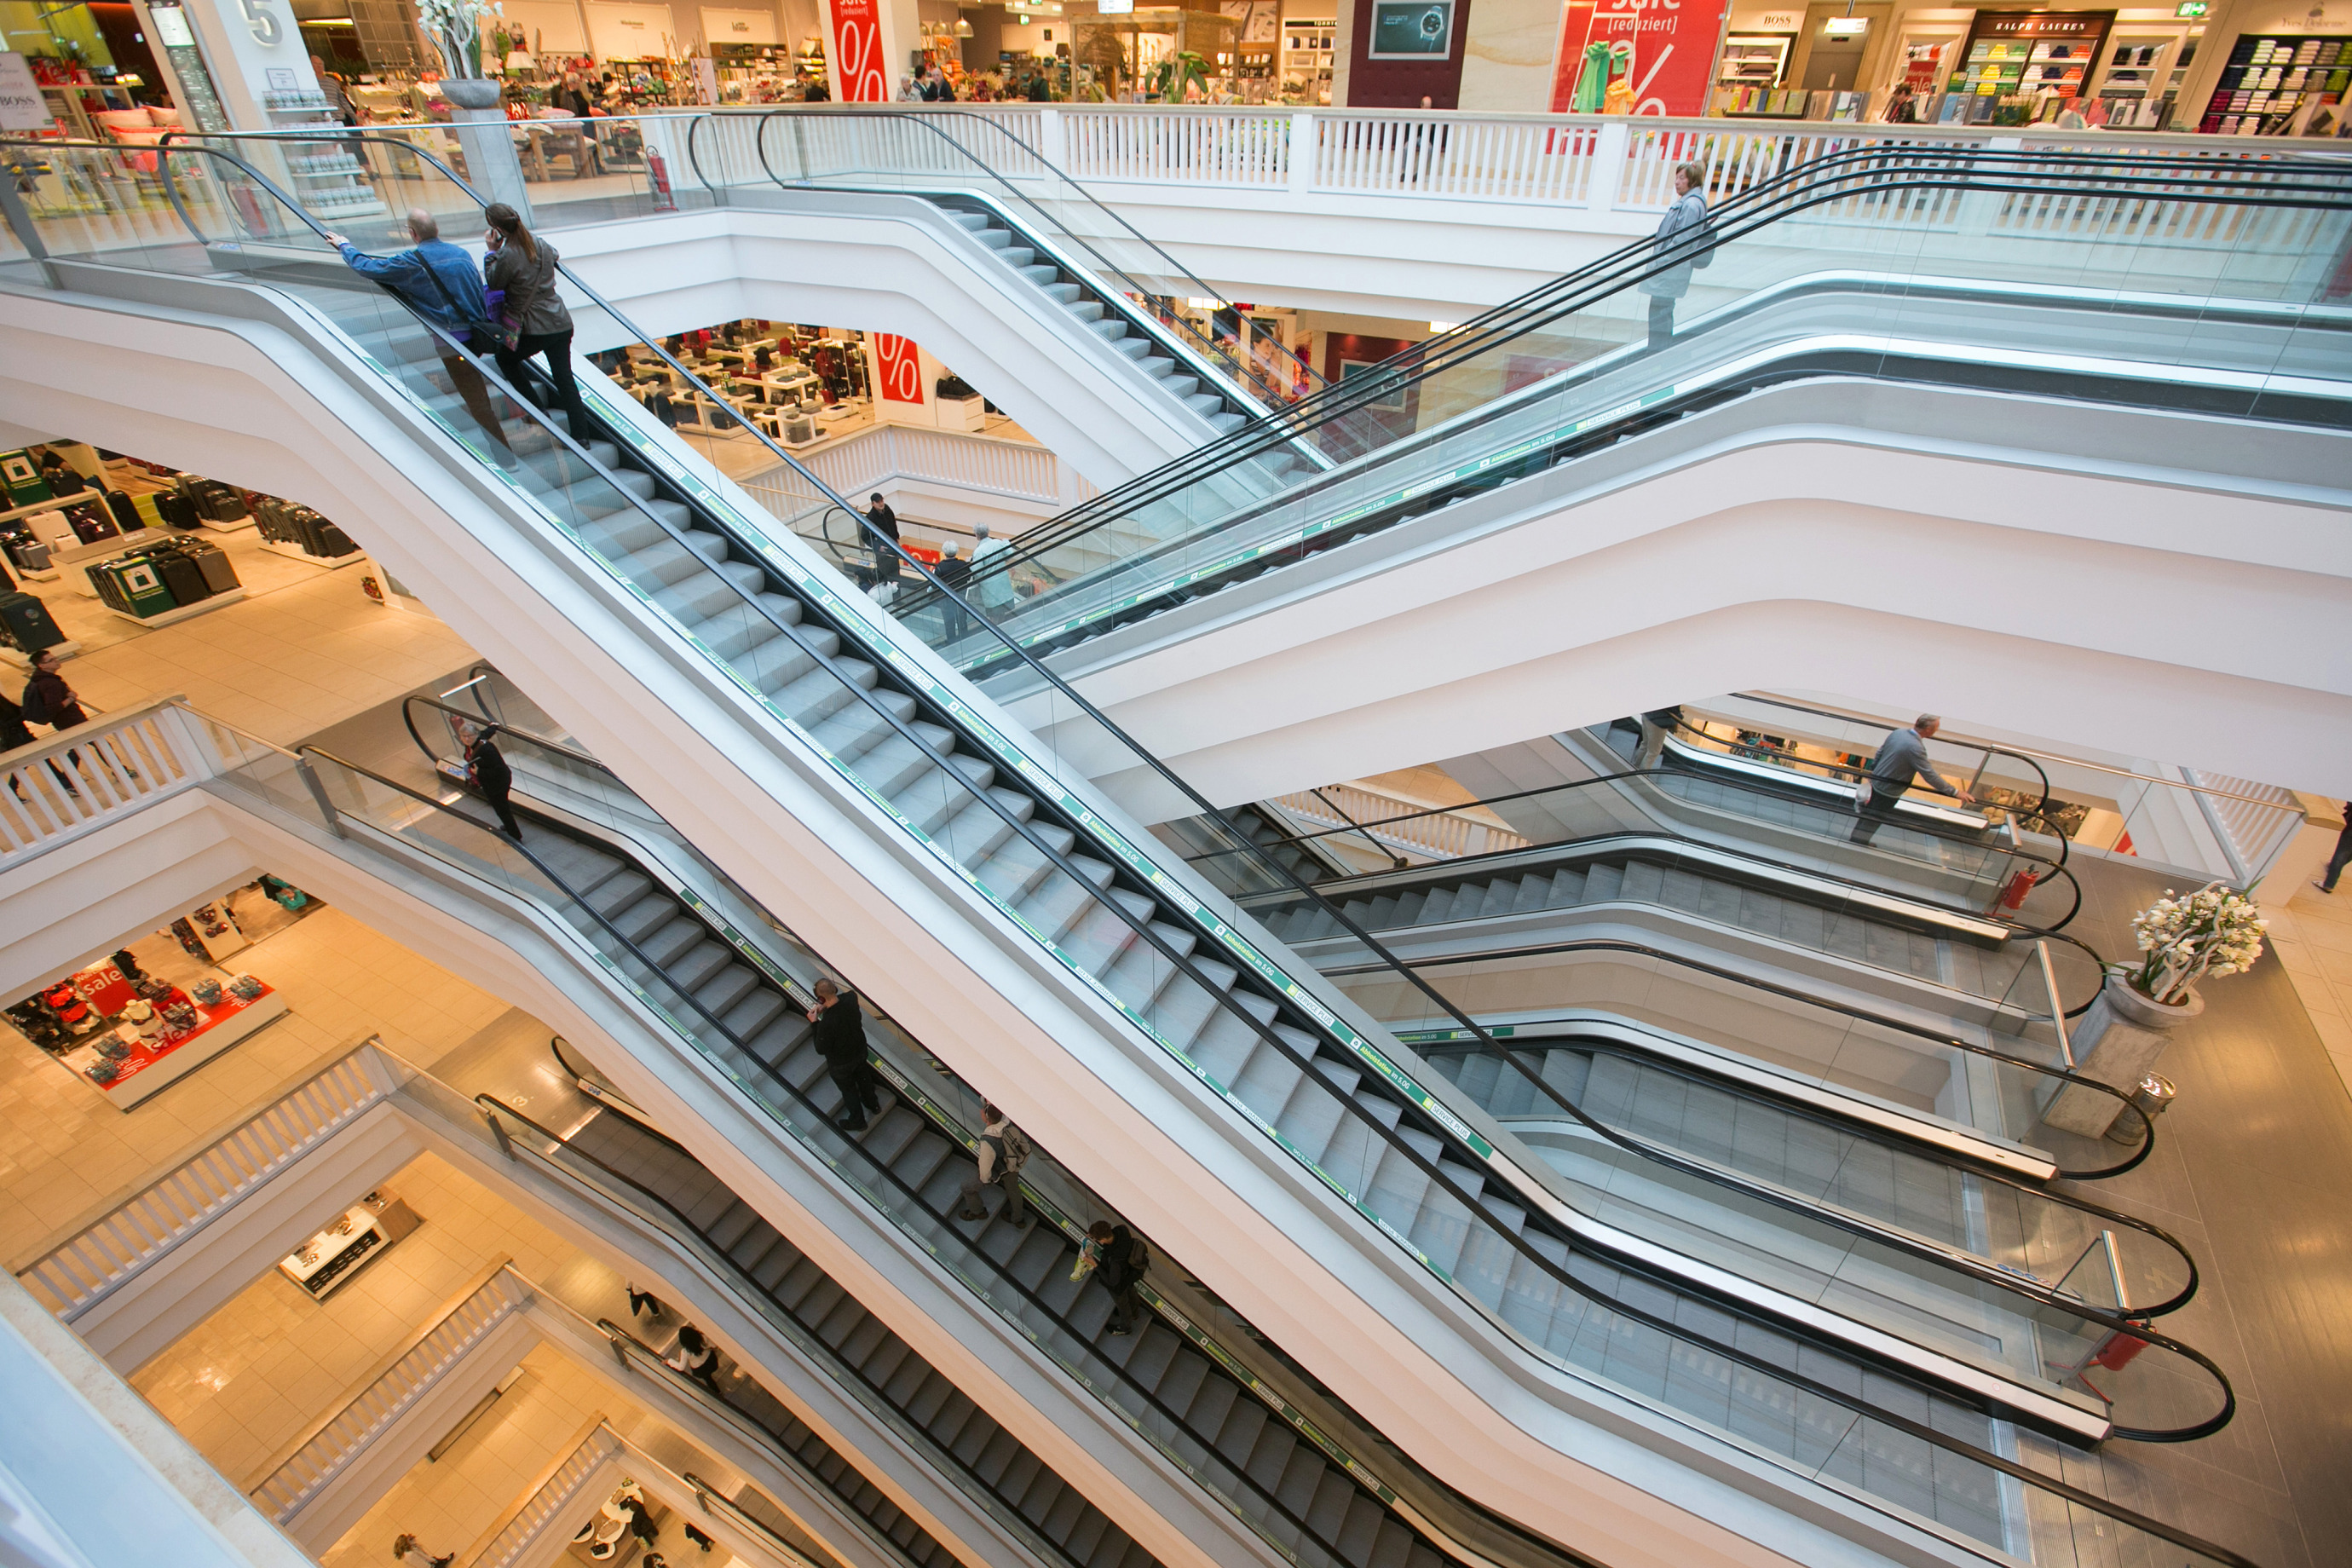 Inside A Galeria Kaufhof Store As Metro AG Sells Department Store Chain For 2.83 Billion Euros